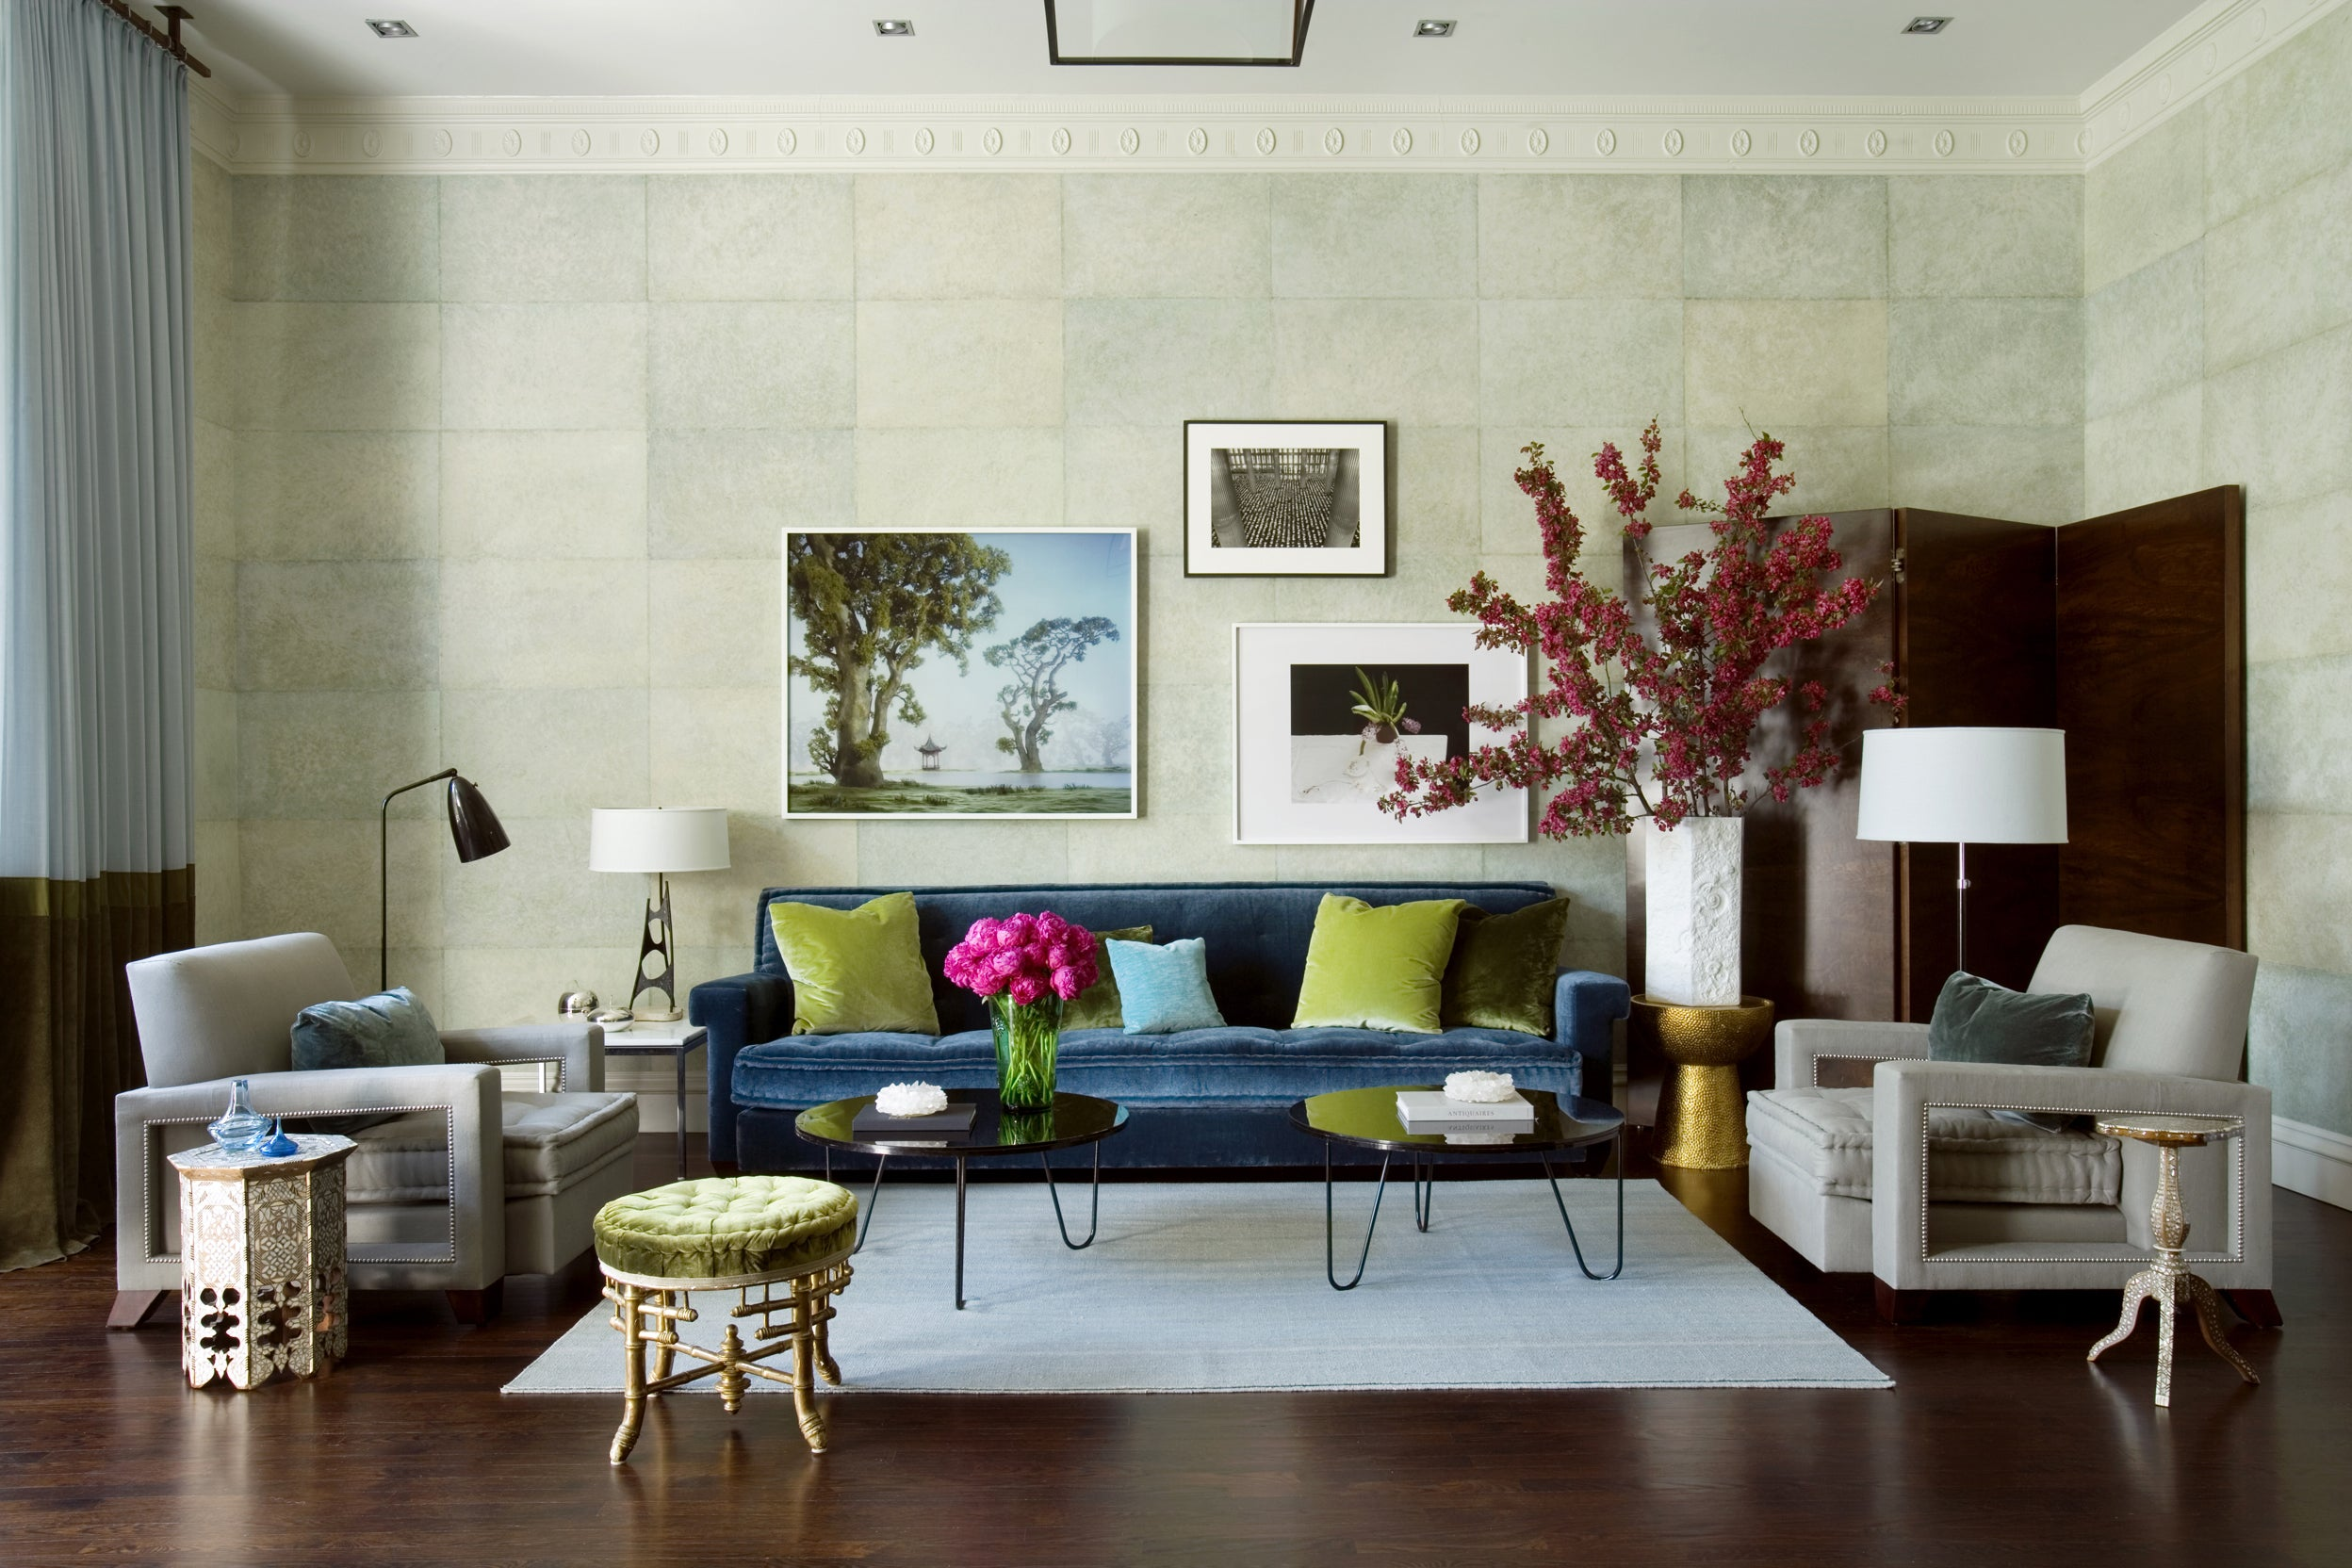 Attractive Living Room By Frank Roop Design Interiors On 1stdibs